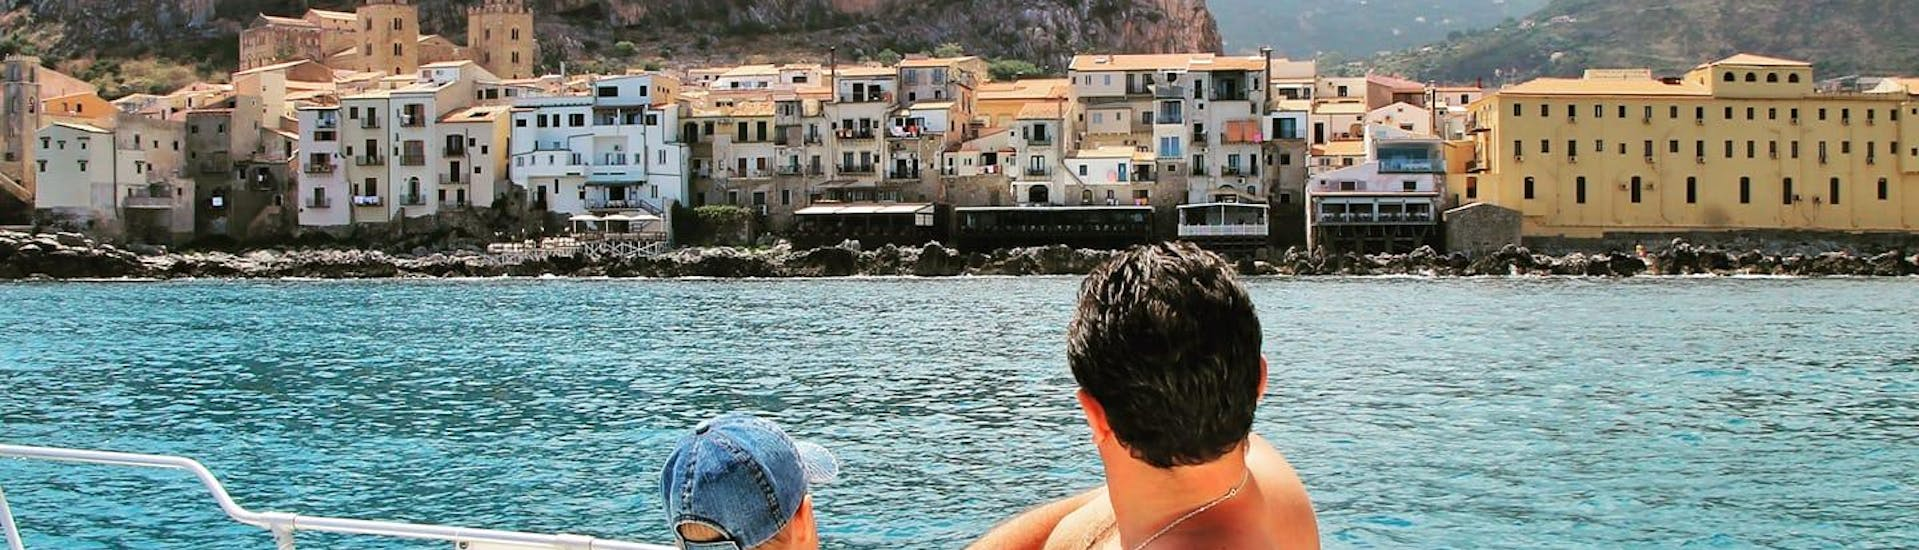 Participants on a boat trip to Cefalù with Sea Land Tours Cefalù look out over the coast of the Sicilian town.